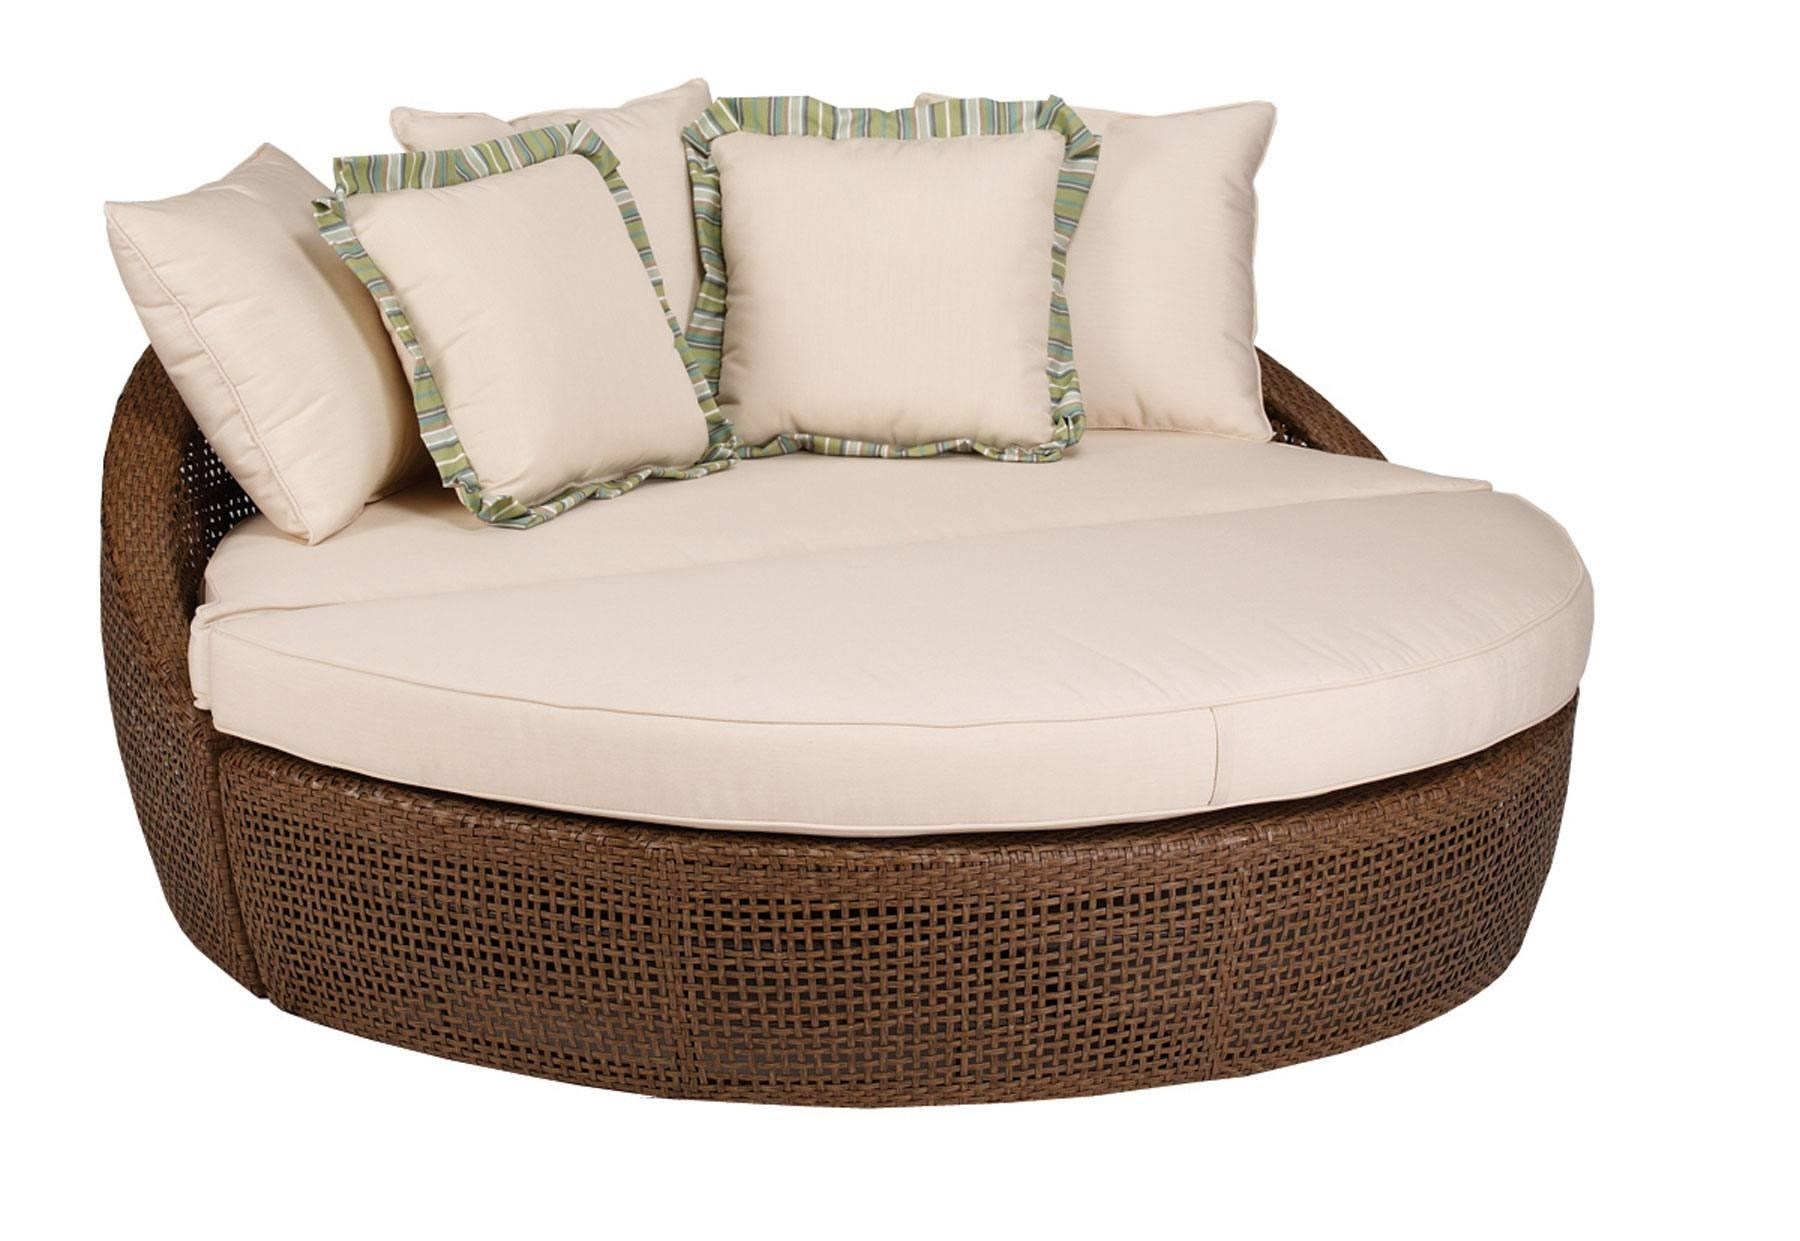 Best Chaise Lounge Sofa | Design Ideas & Decors Pertaining To Sofa Lounge Chairs (View 5 of 20)